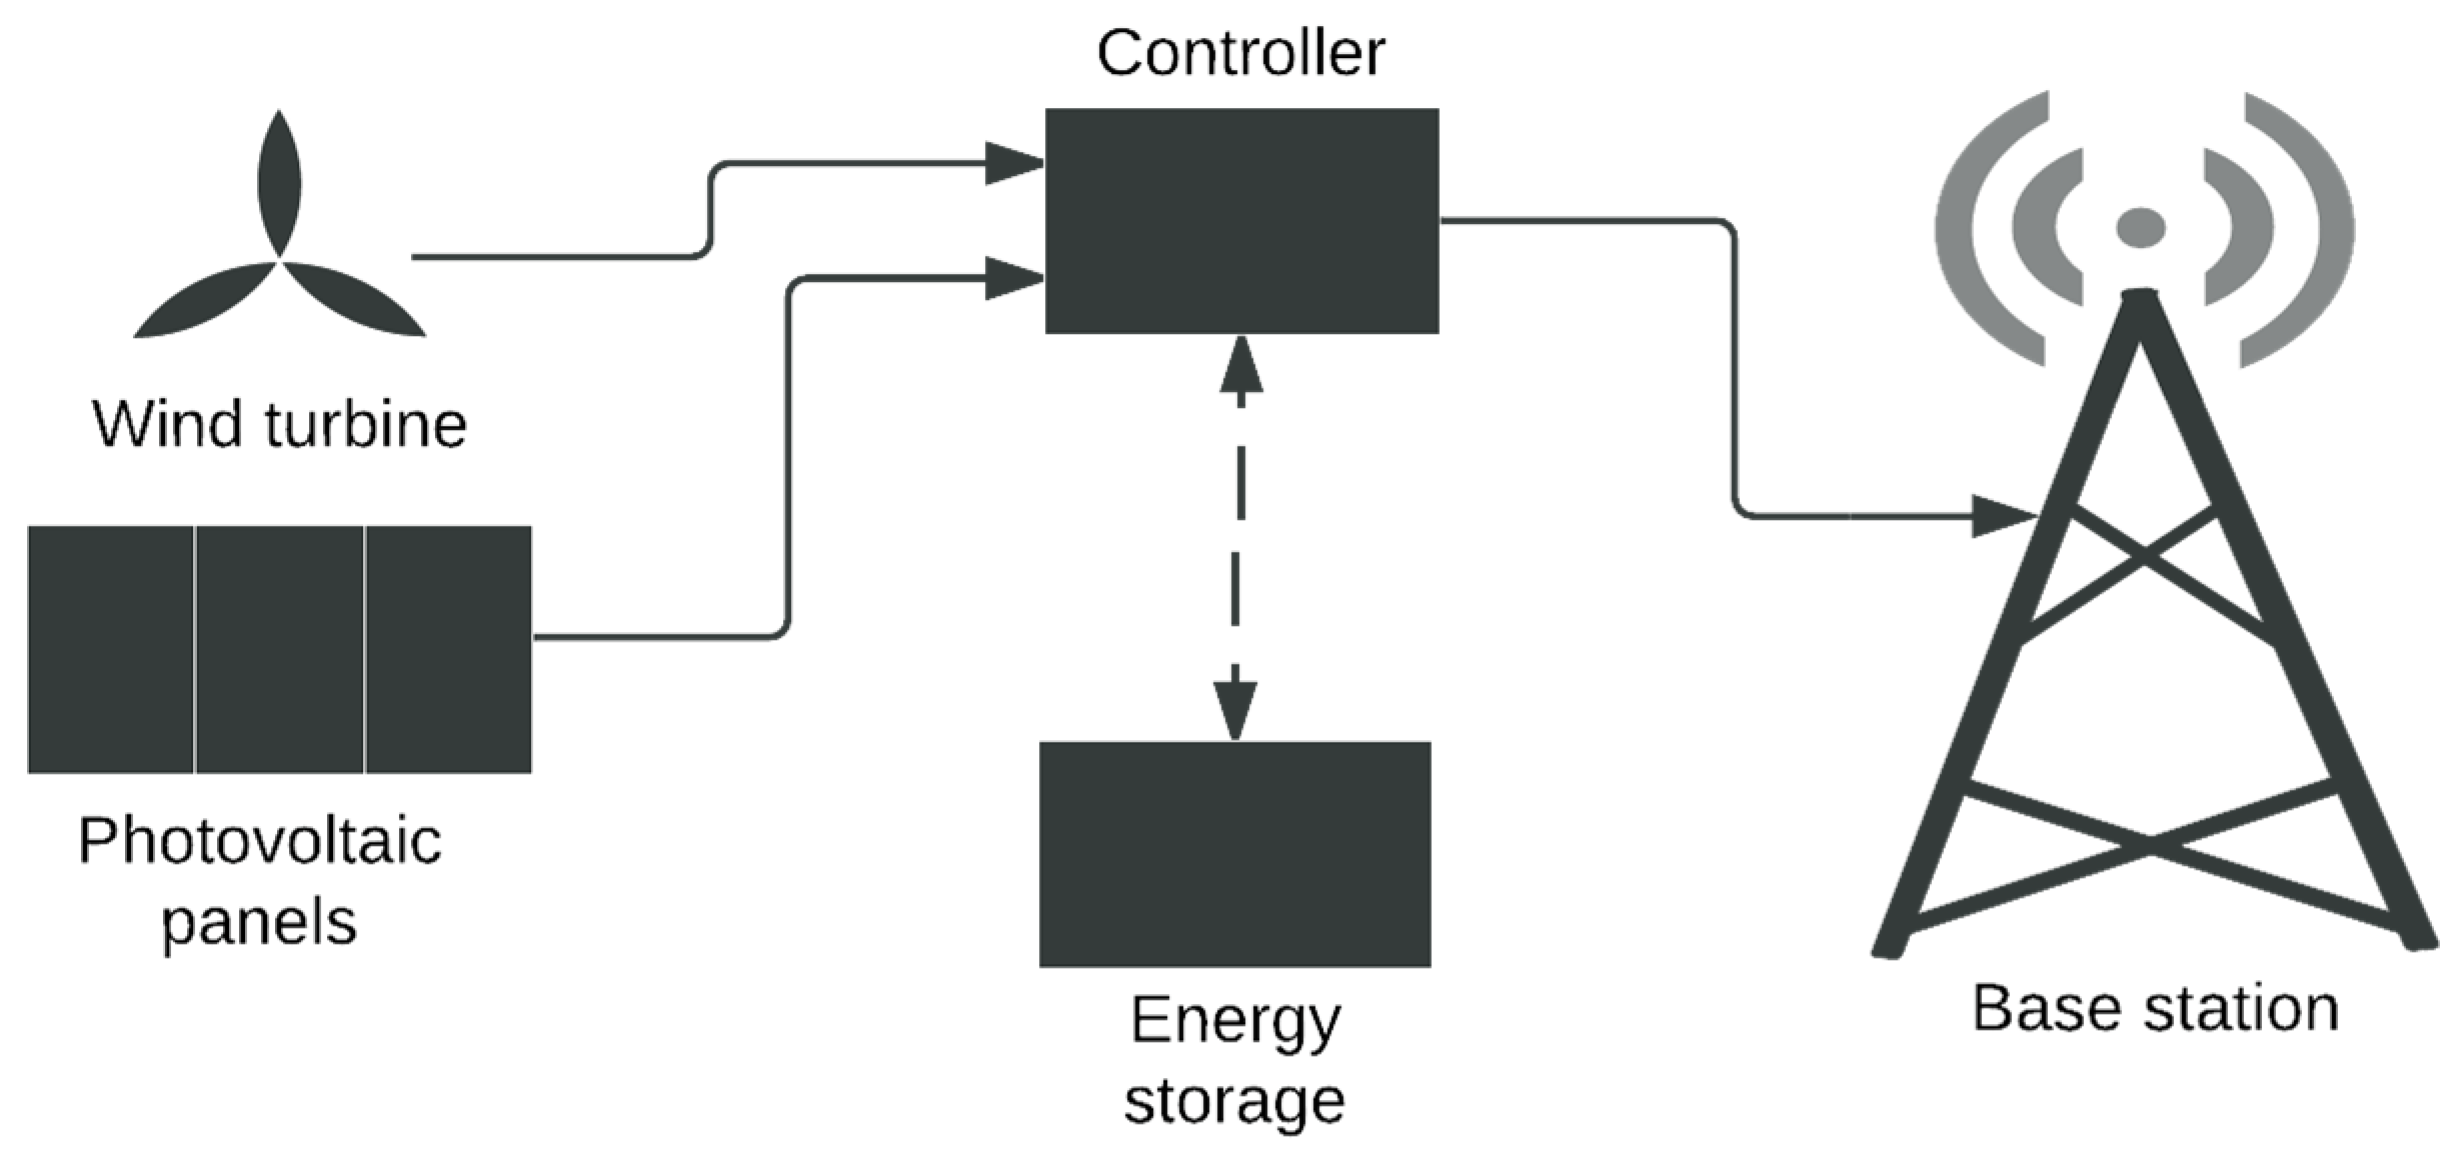 Ys Wind Turbine System Block Diagram Sma Sunny